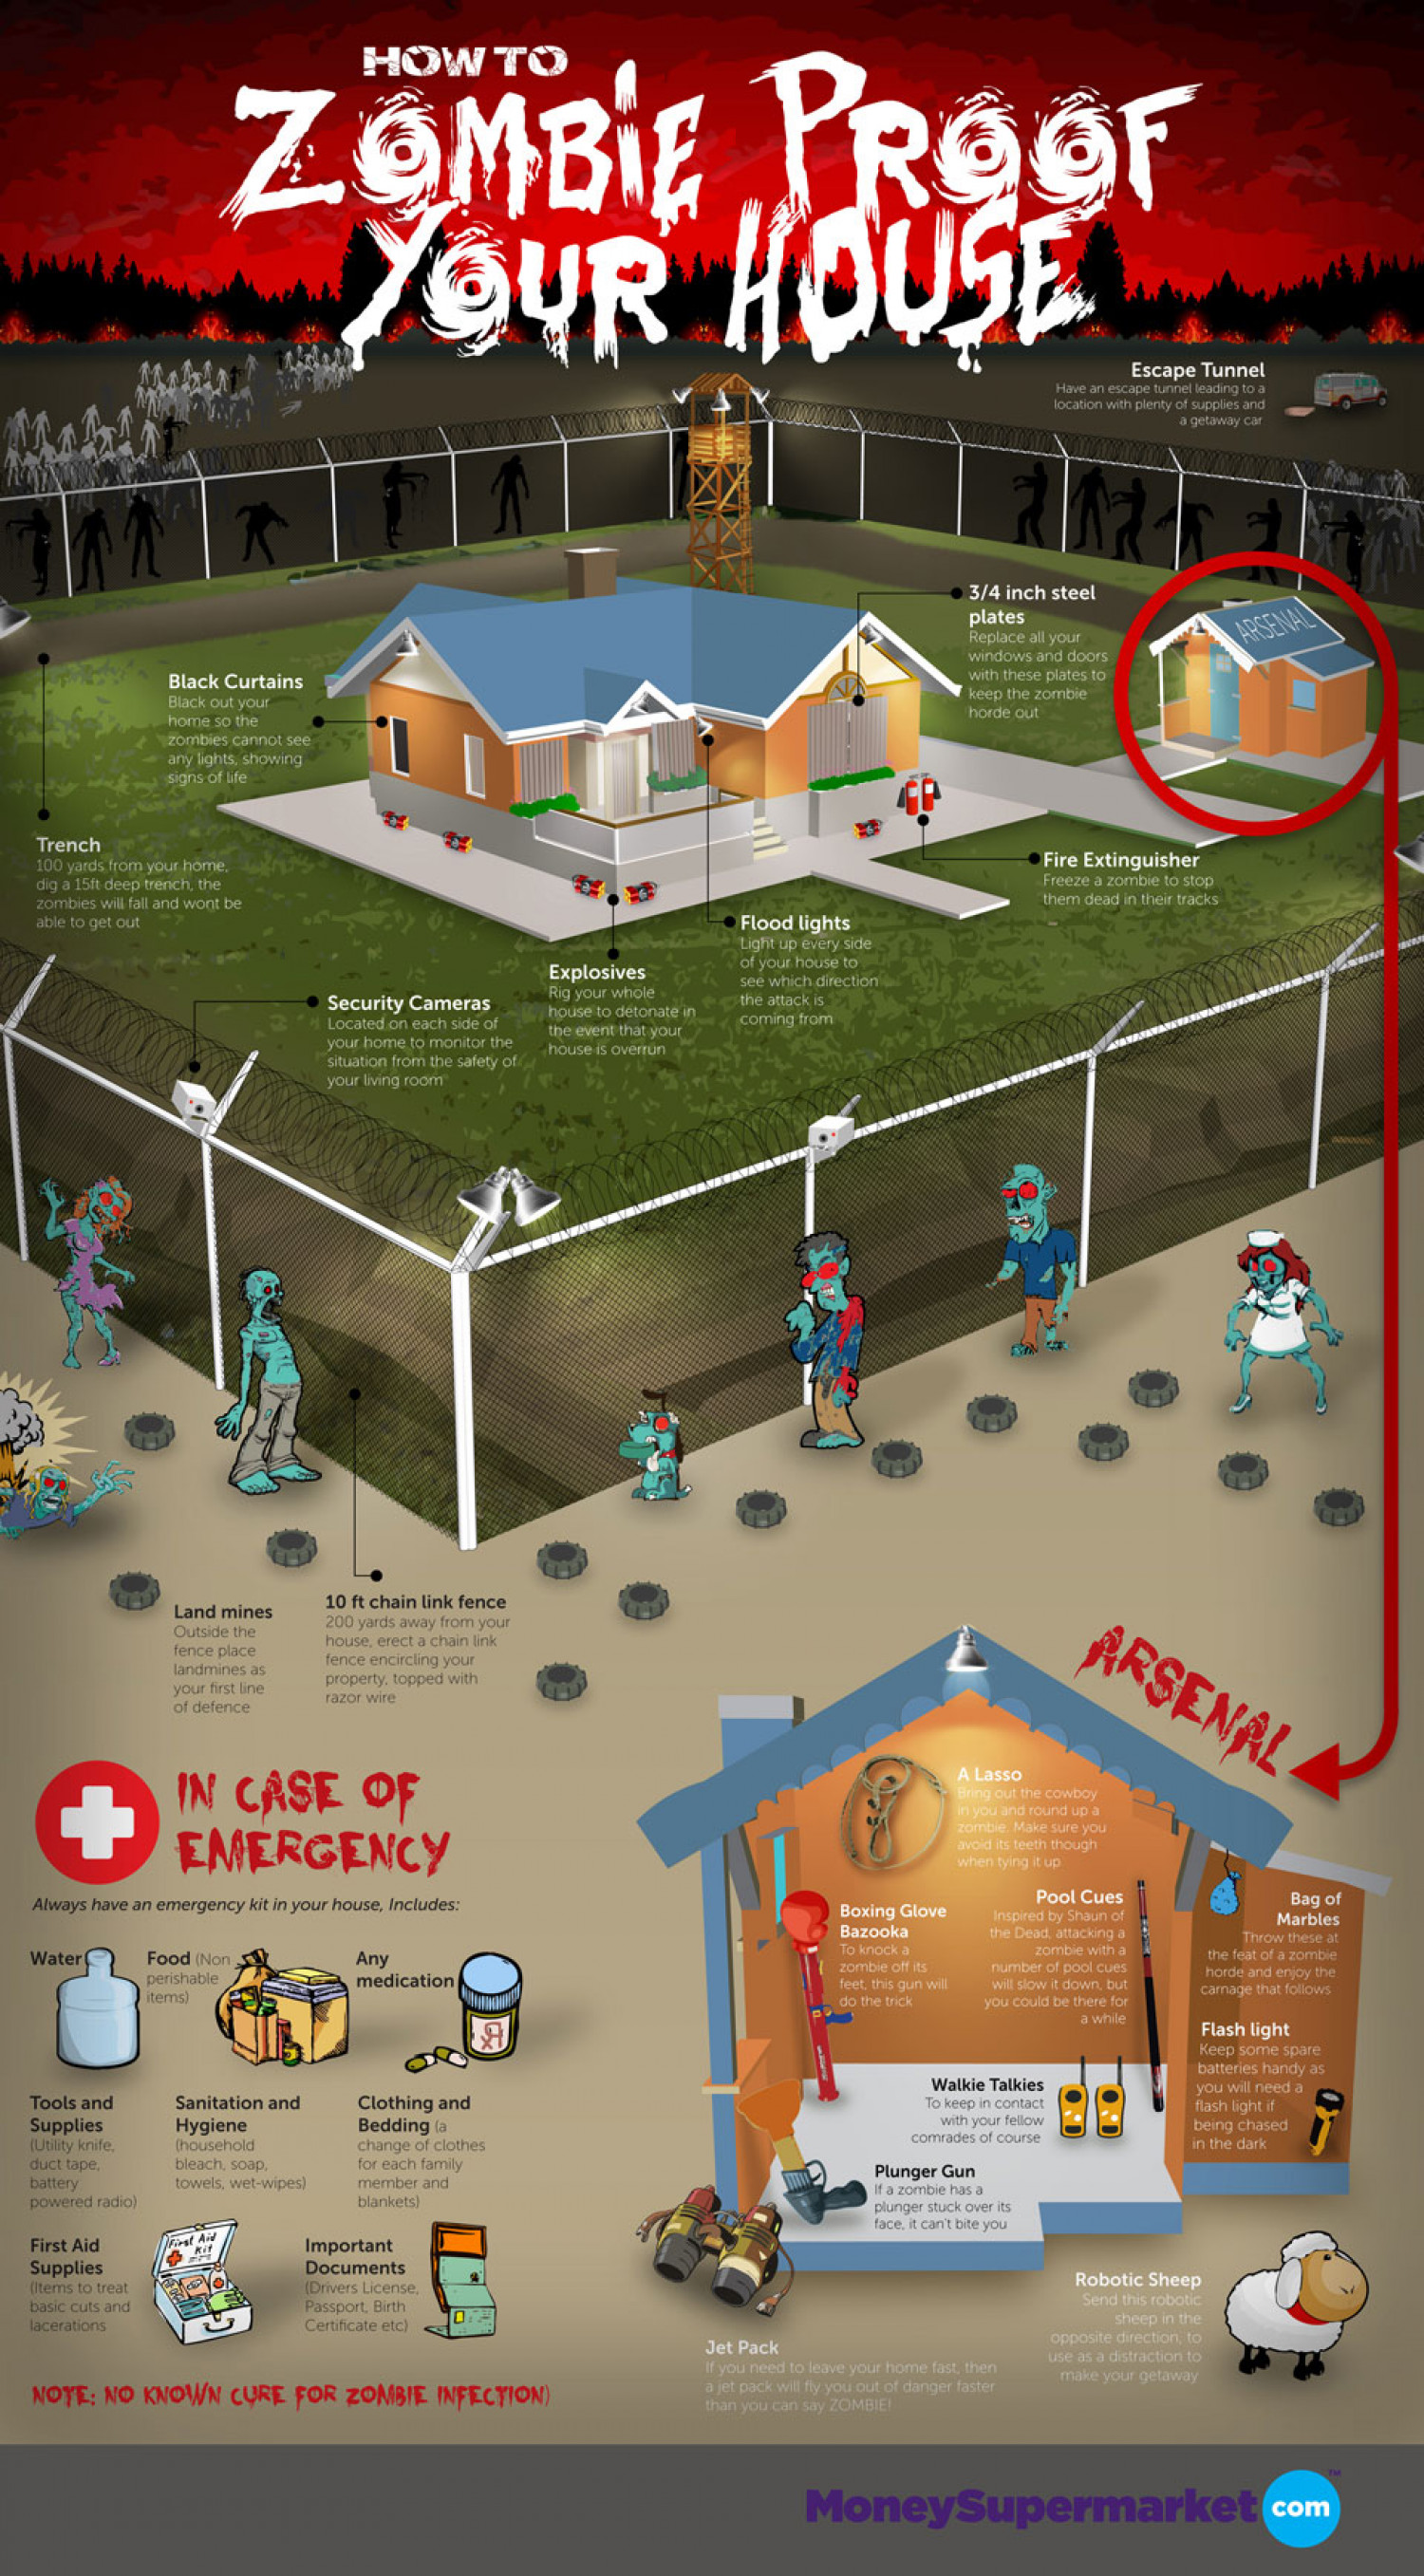 How To Zombie Proof Your House Infographic